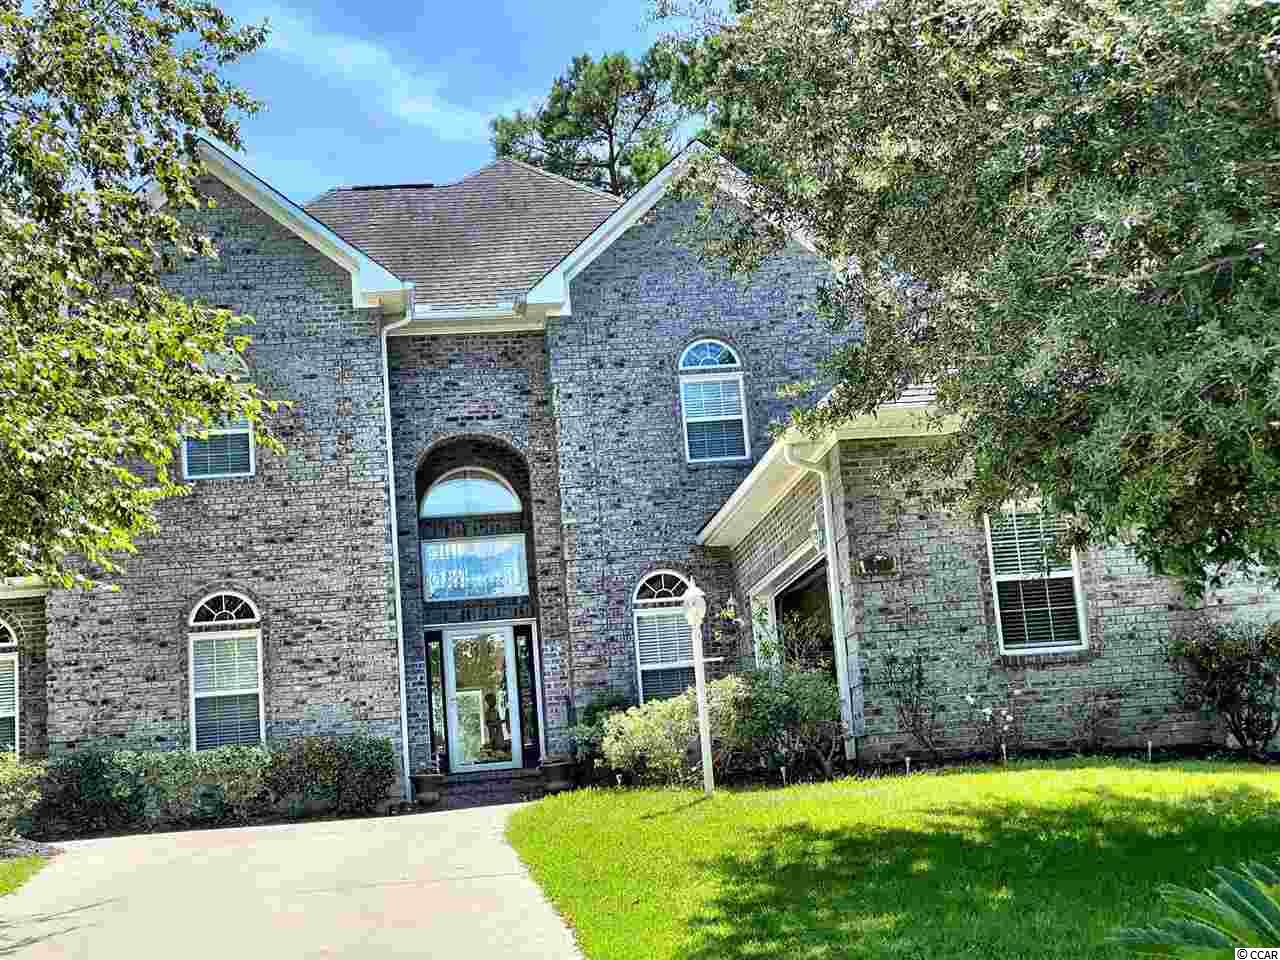 Beautifully designed, custom built, all brick home in the Prestigious community of River Hills.  This 4 bedroom, 2 and a half bath home overlooks the 18th Green, fairway and clubhouse.  The formal entrance opens up to a 2 story great room with fireplace and a wall of glass windows, showing casing the open balcony with views of the River Hills Golf Course.  Attention to detail is apparent throughout this home  with crown moldings, bamboo flooring and much more! Fully equipped spacious chef's kitchen.  Master suite is on main level of home and offers plenty of closet space with built ins, walk in custom shower and tub.  Home sits on a high, well manicured, estate lot with lots of shade trees.  This immaculate home shows like a model and will not last long!  River Hills is an established Golf Course Community, located in the heart of Little River , offers a beautiful setting for peaceful , private Southern Comfort.